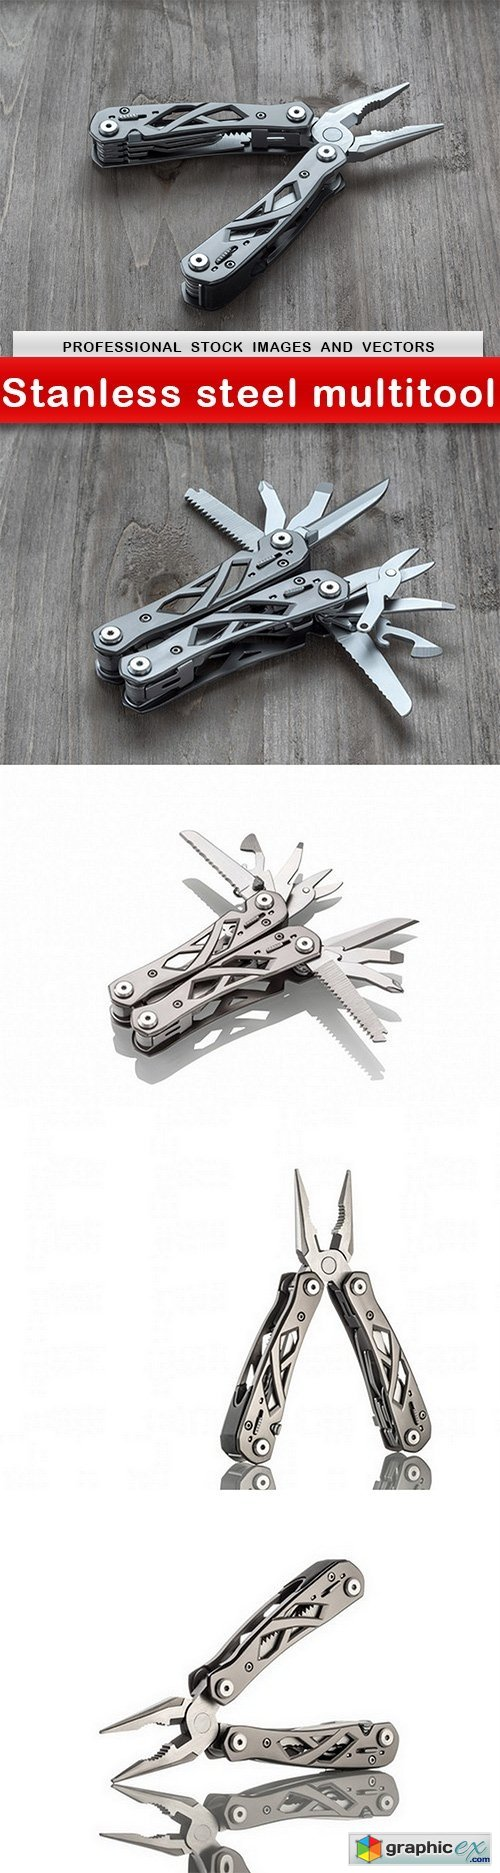 Stanless steel multitool - 5 UHQ JPEG